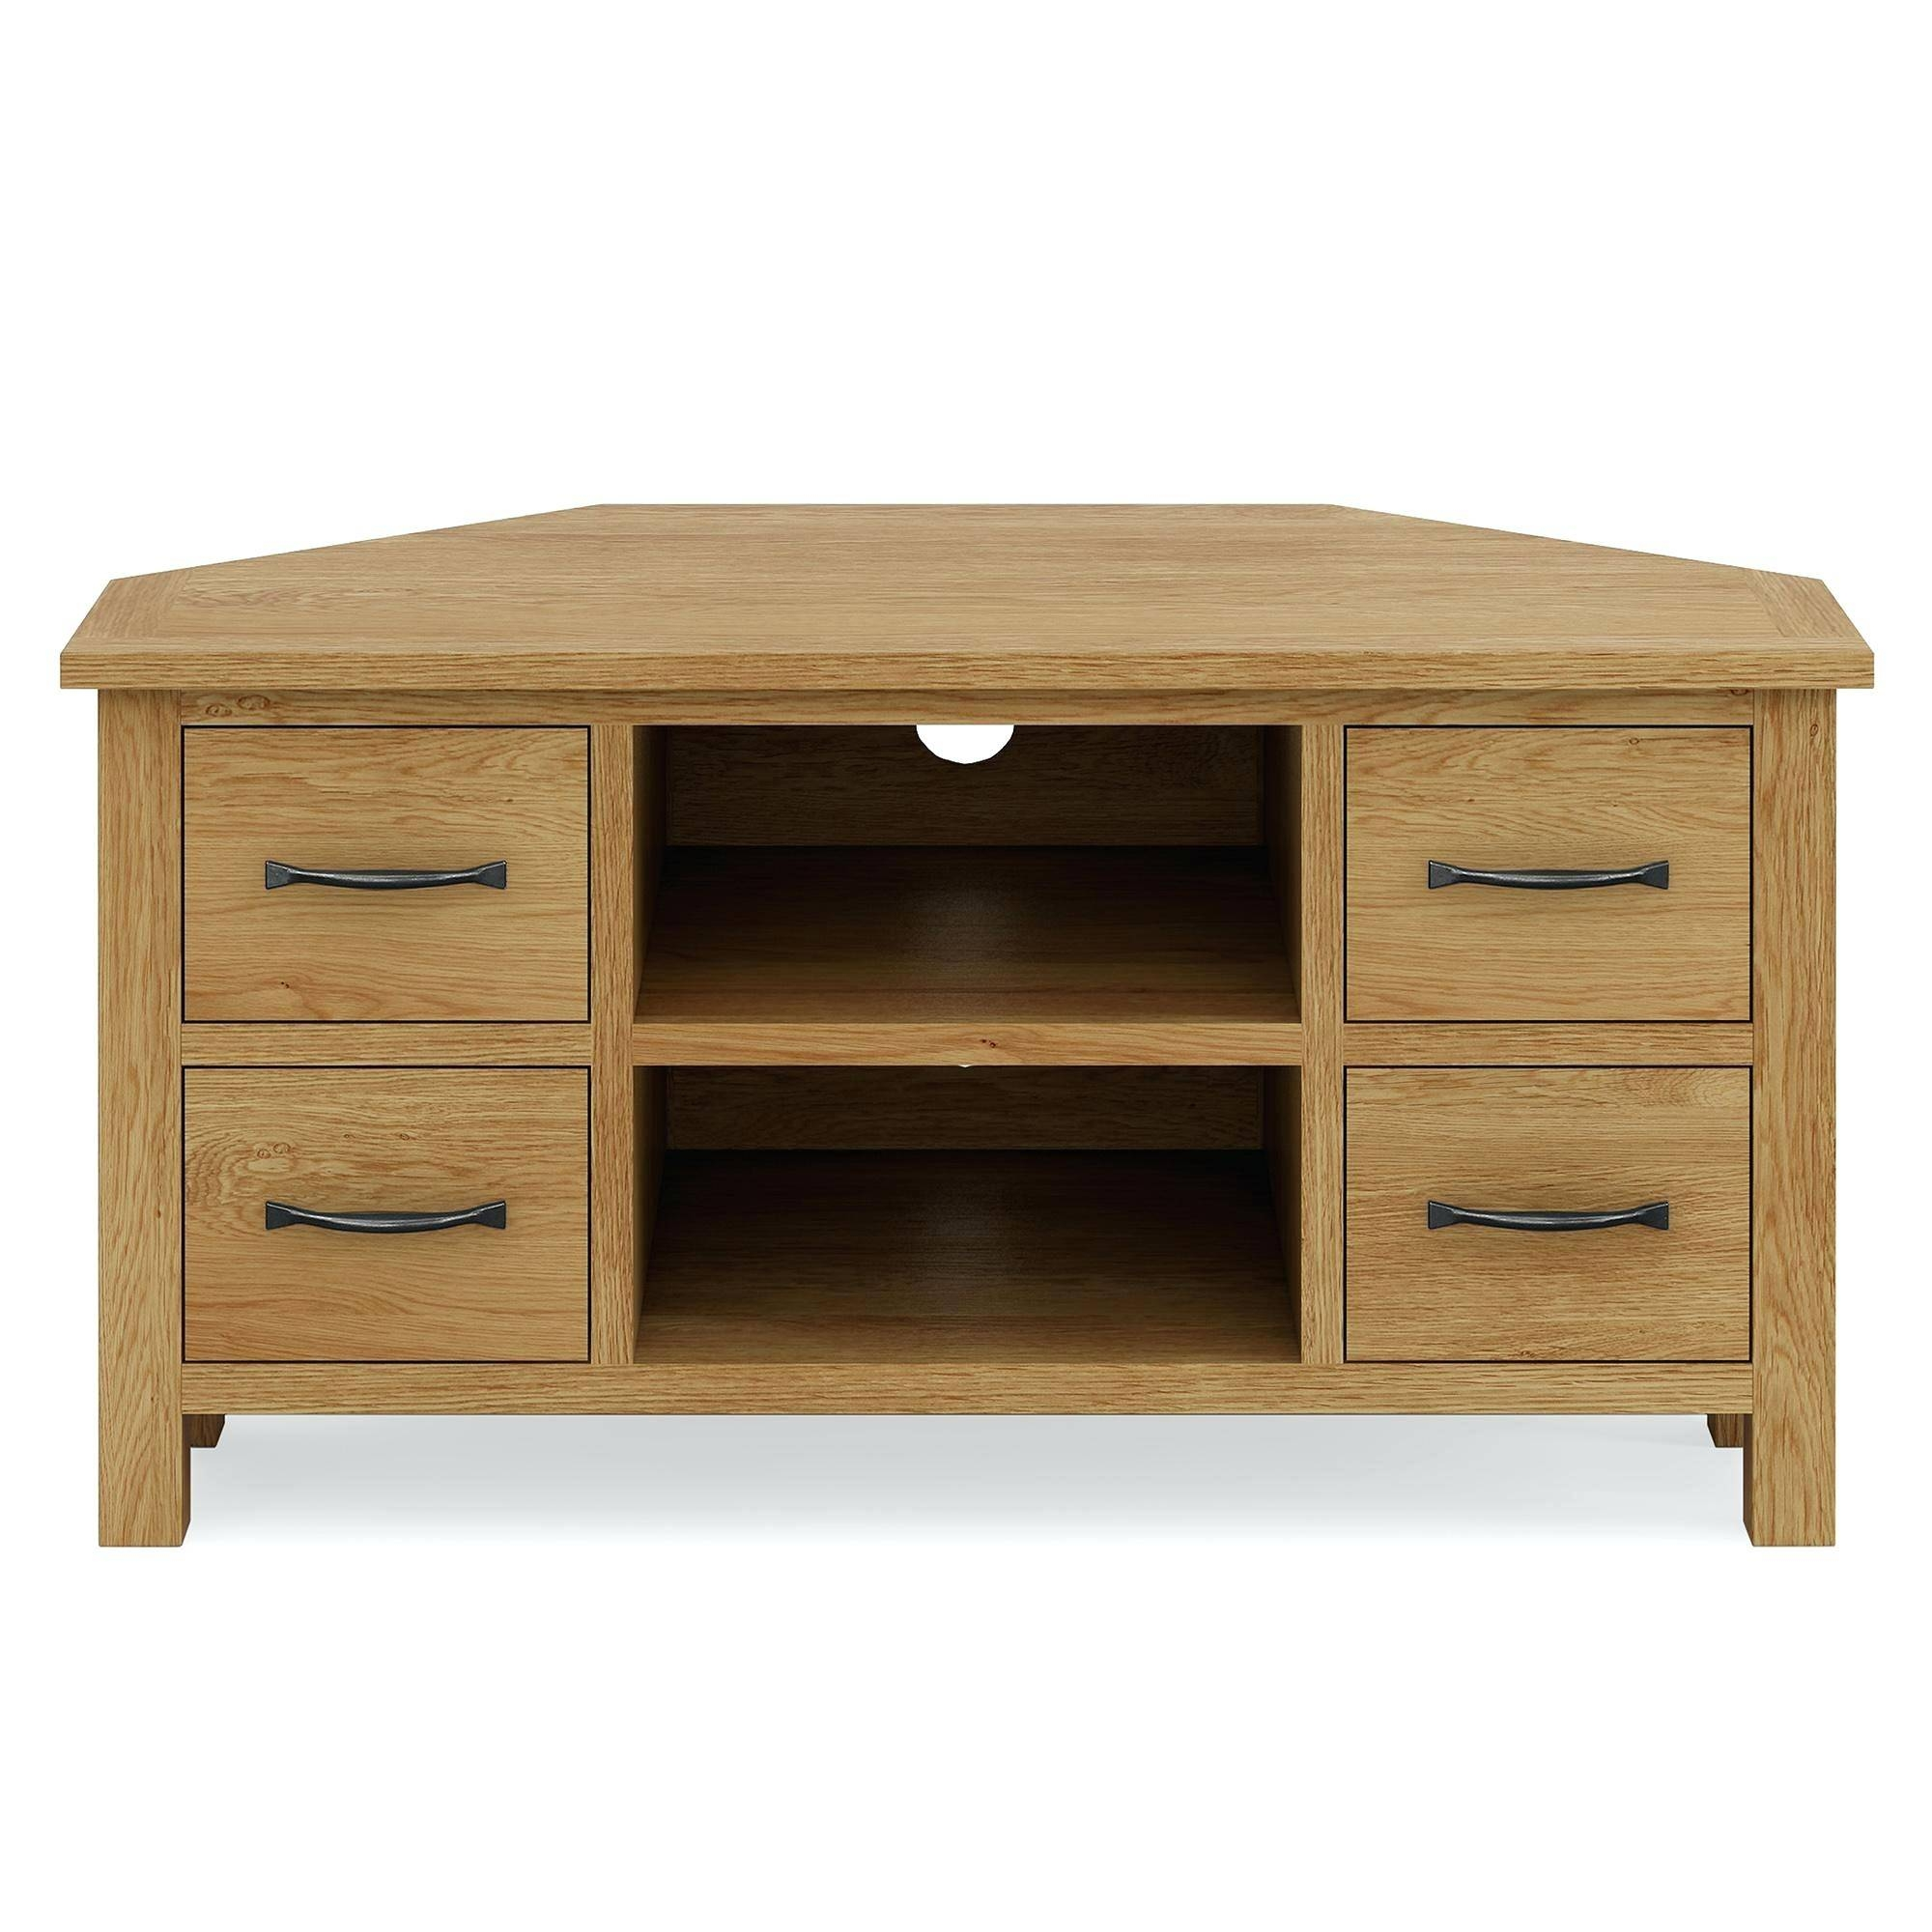 Tv Stand ~ Bordeaux Oak Corner Tv Stand Solid Oak Corner Tv Stands throughout Oak Effect Corner Tv Stand (Image 12 of 15)